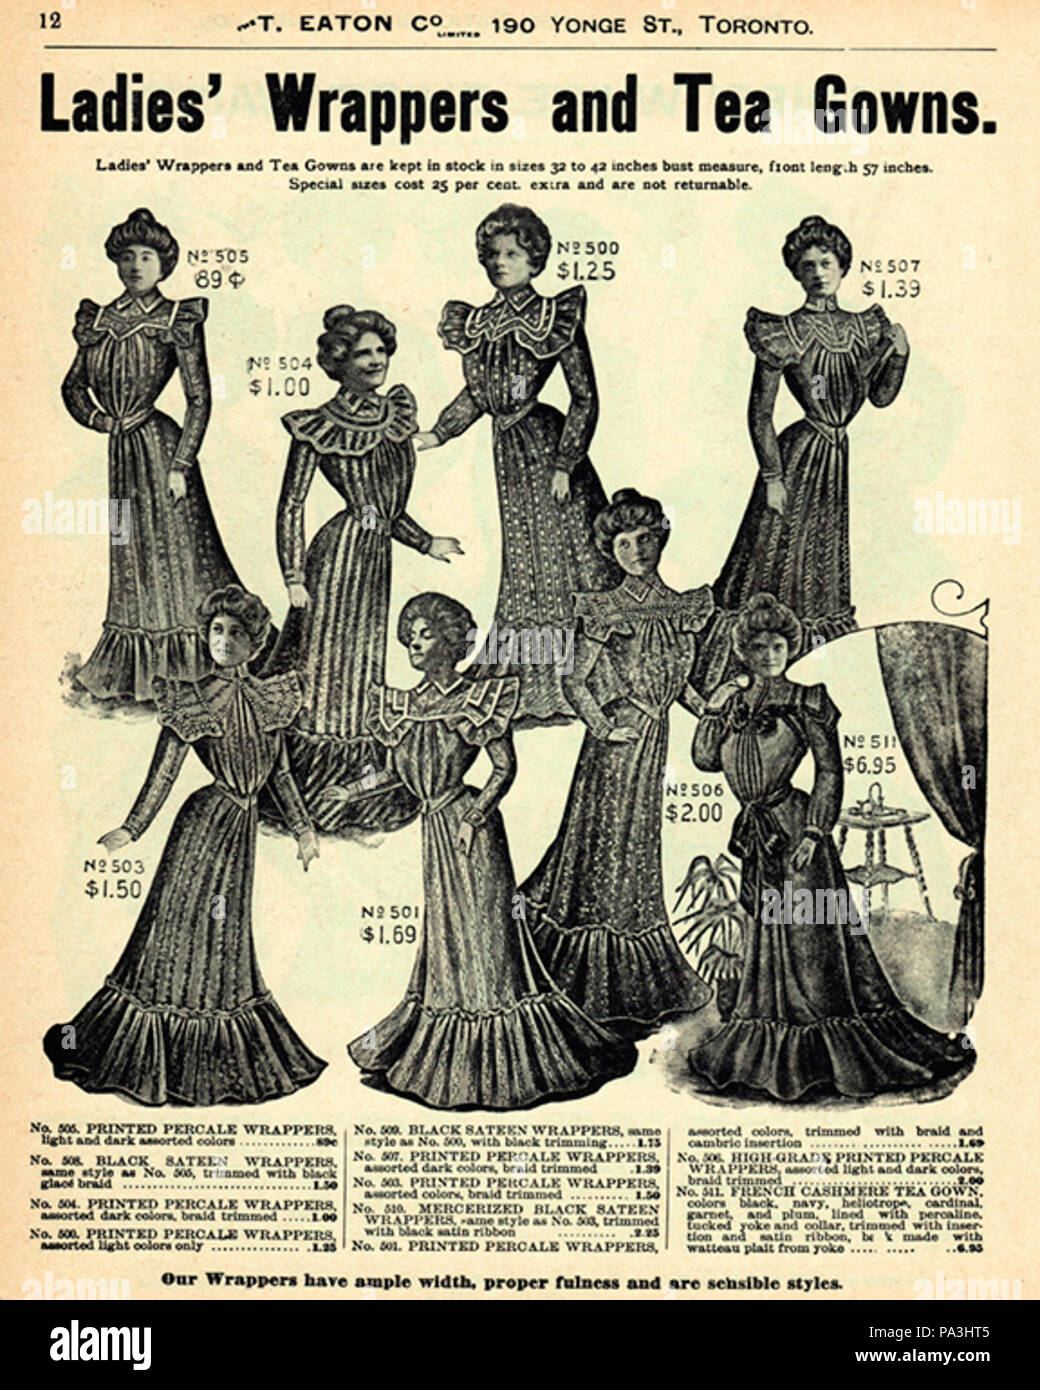 600 Eatons Catalog -46 (Ladies Wrappers and Tea Gowns Stock Photo ...